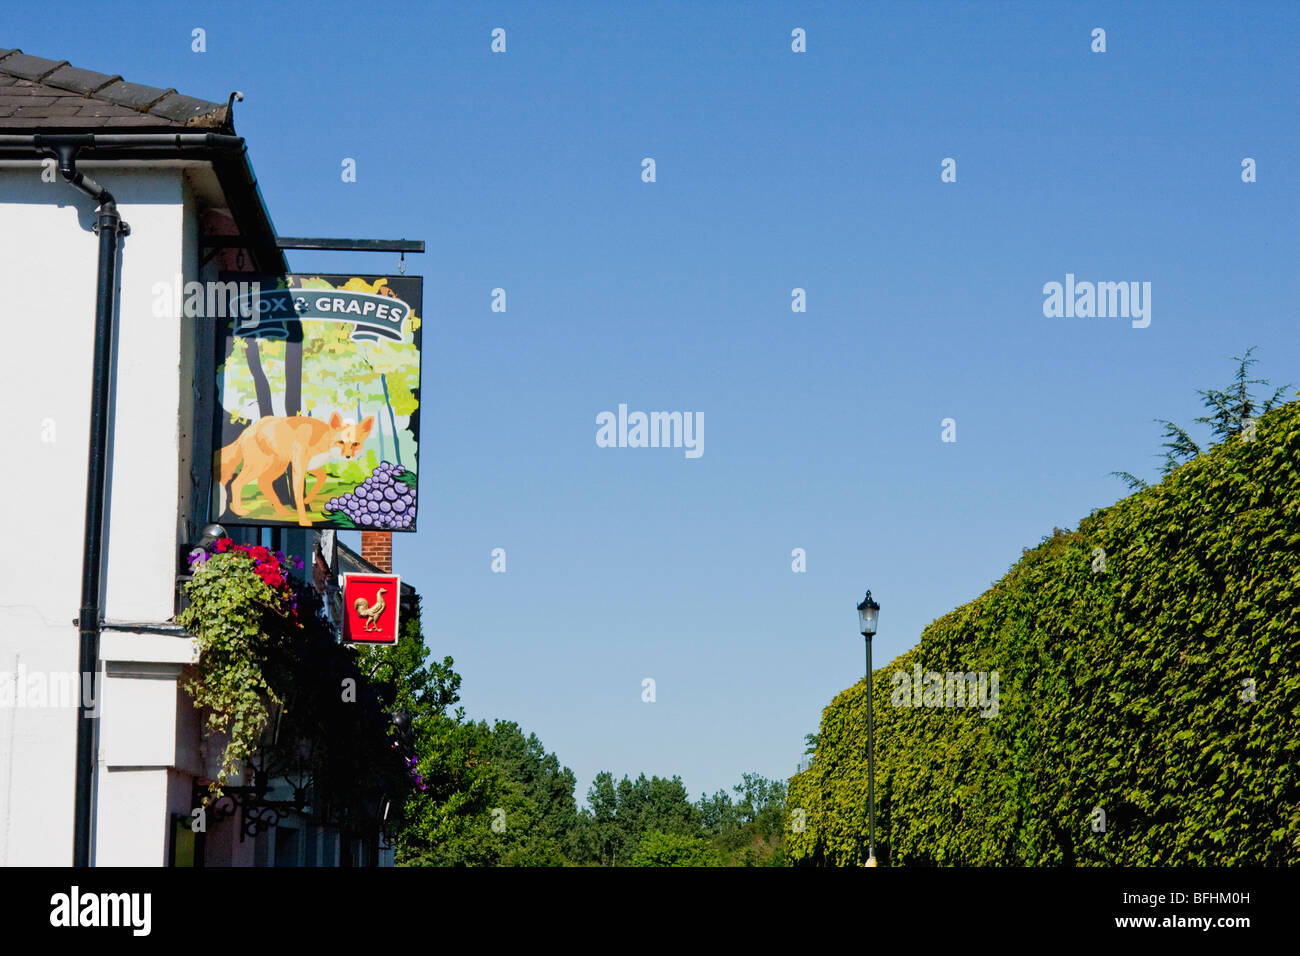 Fox and Grapes pub sign in Wimbledon, London England - Stock Image